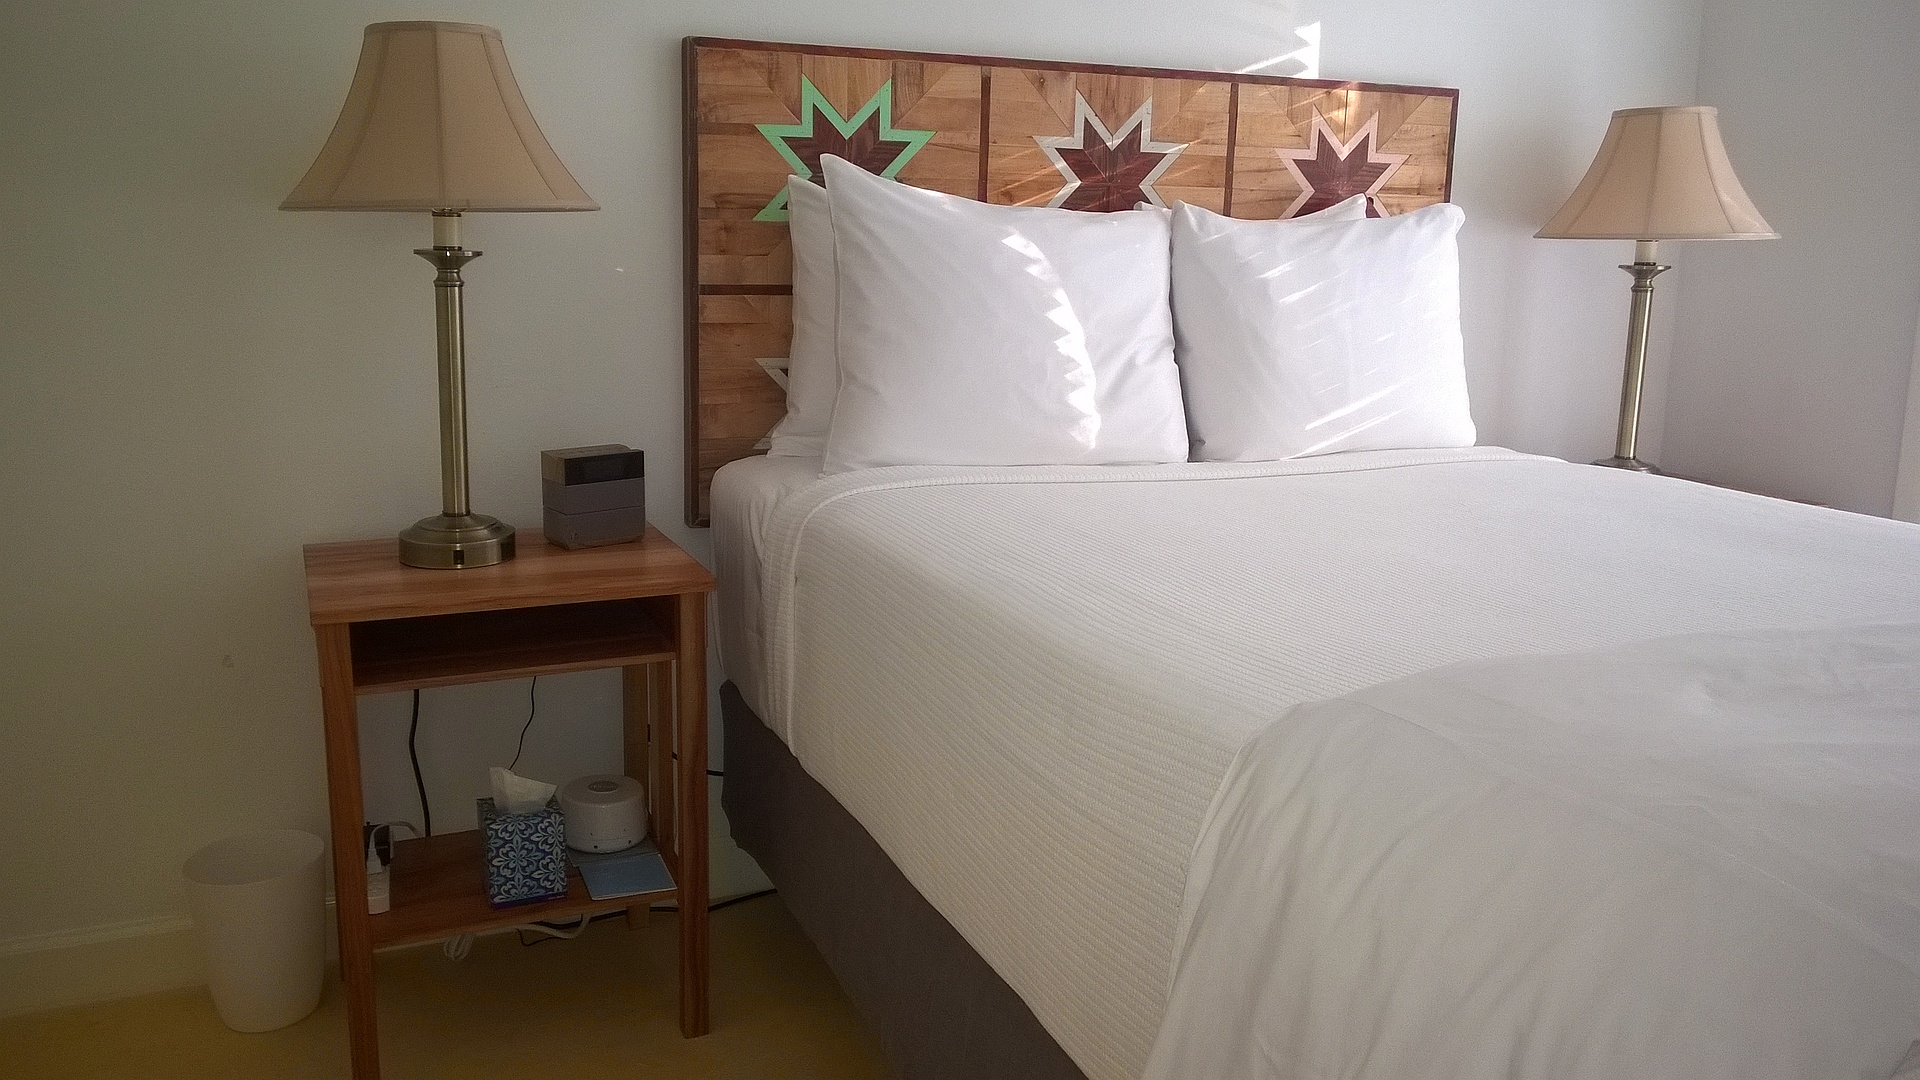 Photo of Queen Bed with custom inlaid wood headboard in the Carriage House